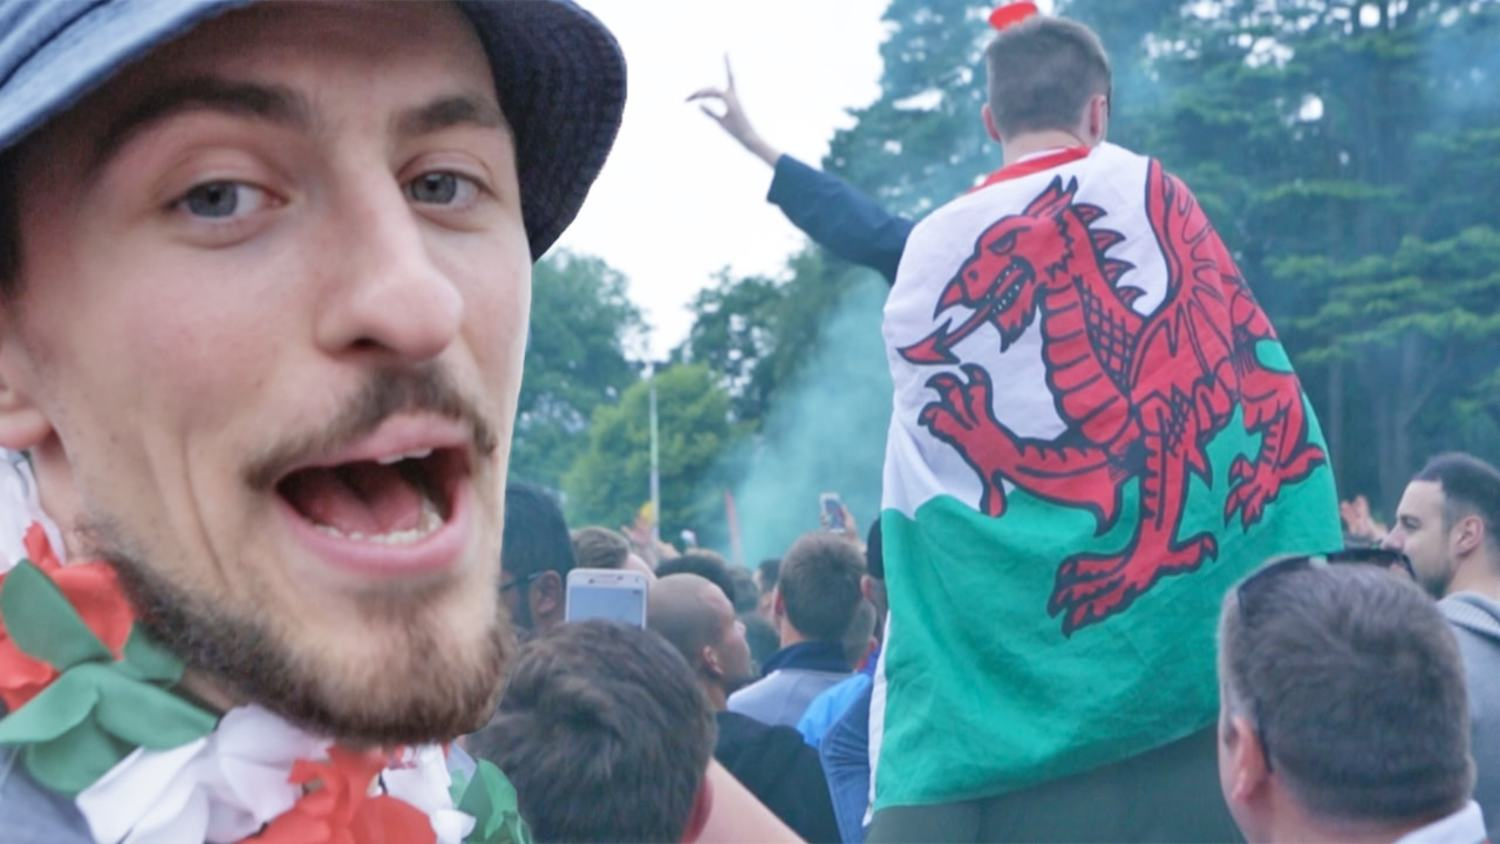 Vuj Joins Wales As They Make History in Euro 2016